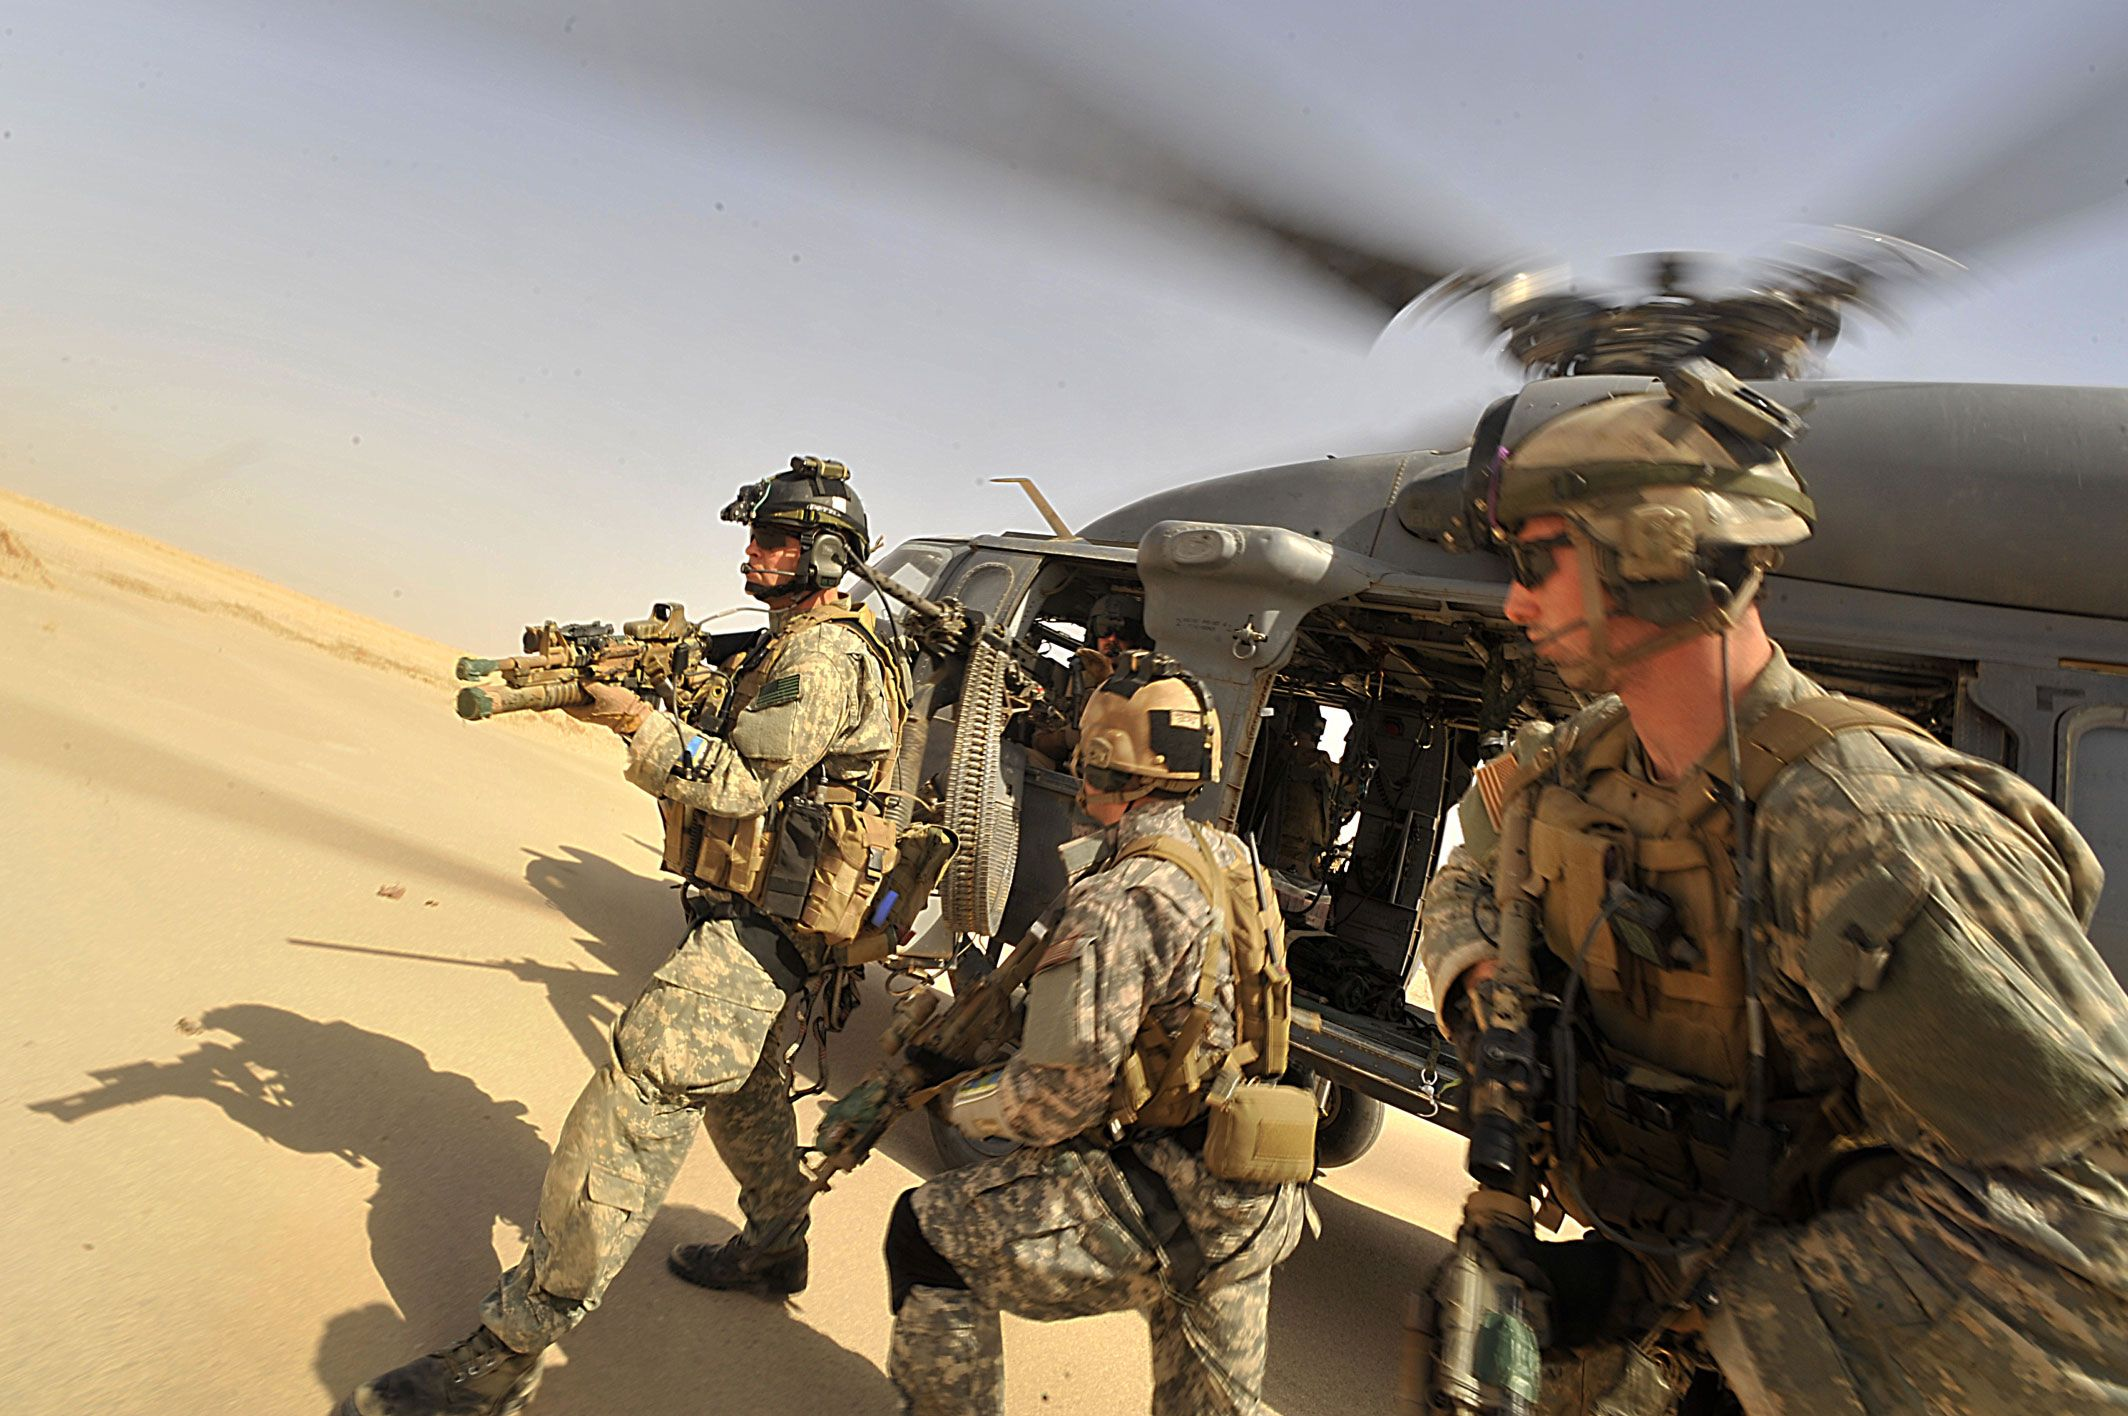 pararescue air force job description